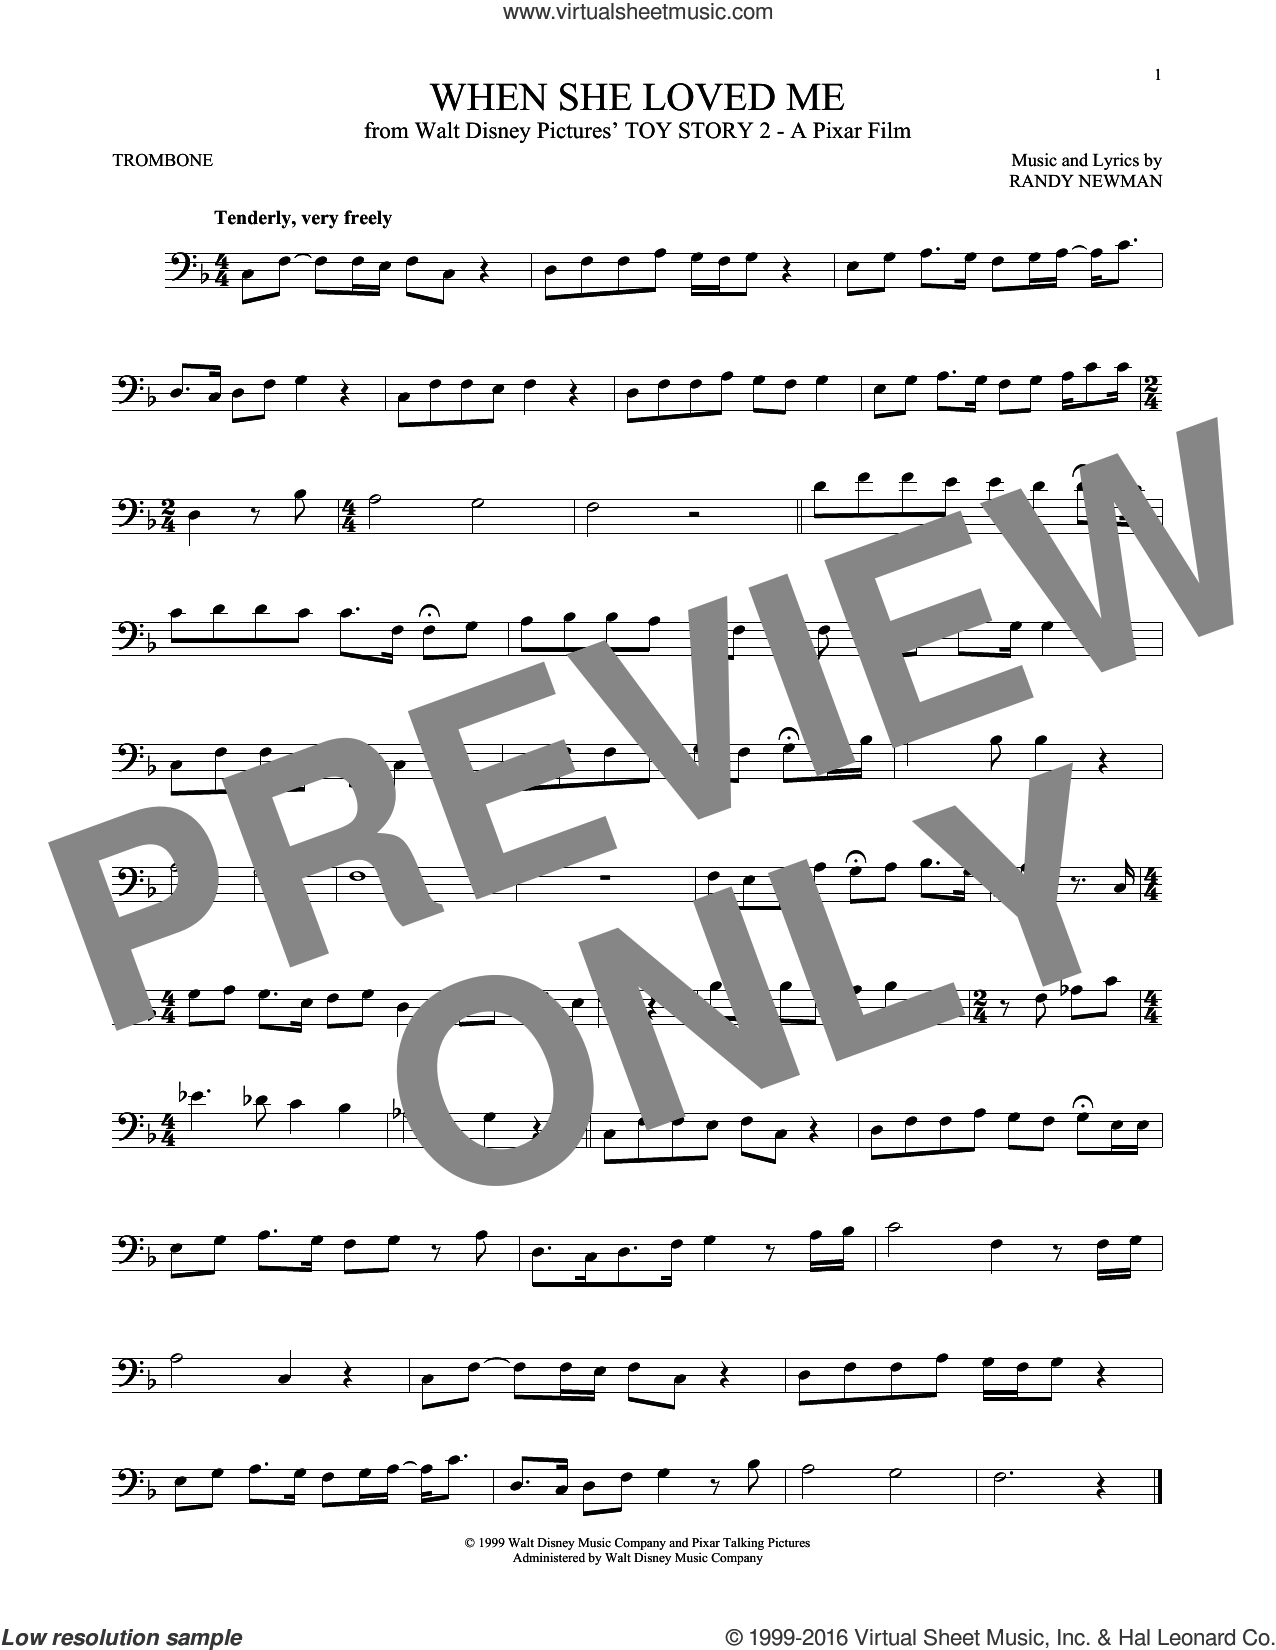 When She Loved Me (from Toy Story 2) sheet music for trombone solo by Sarah McLachlan and Randy Newman, intermediate skill level